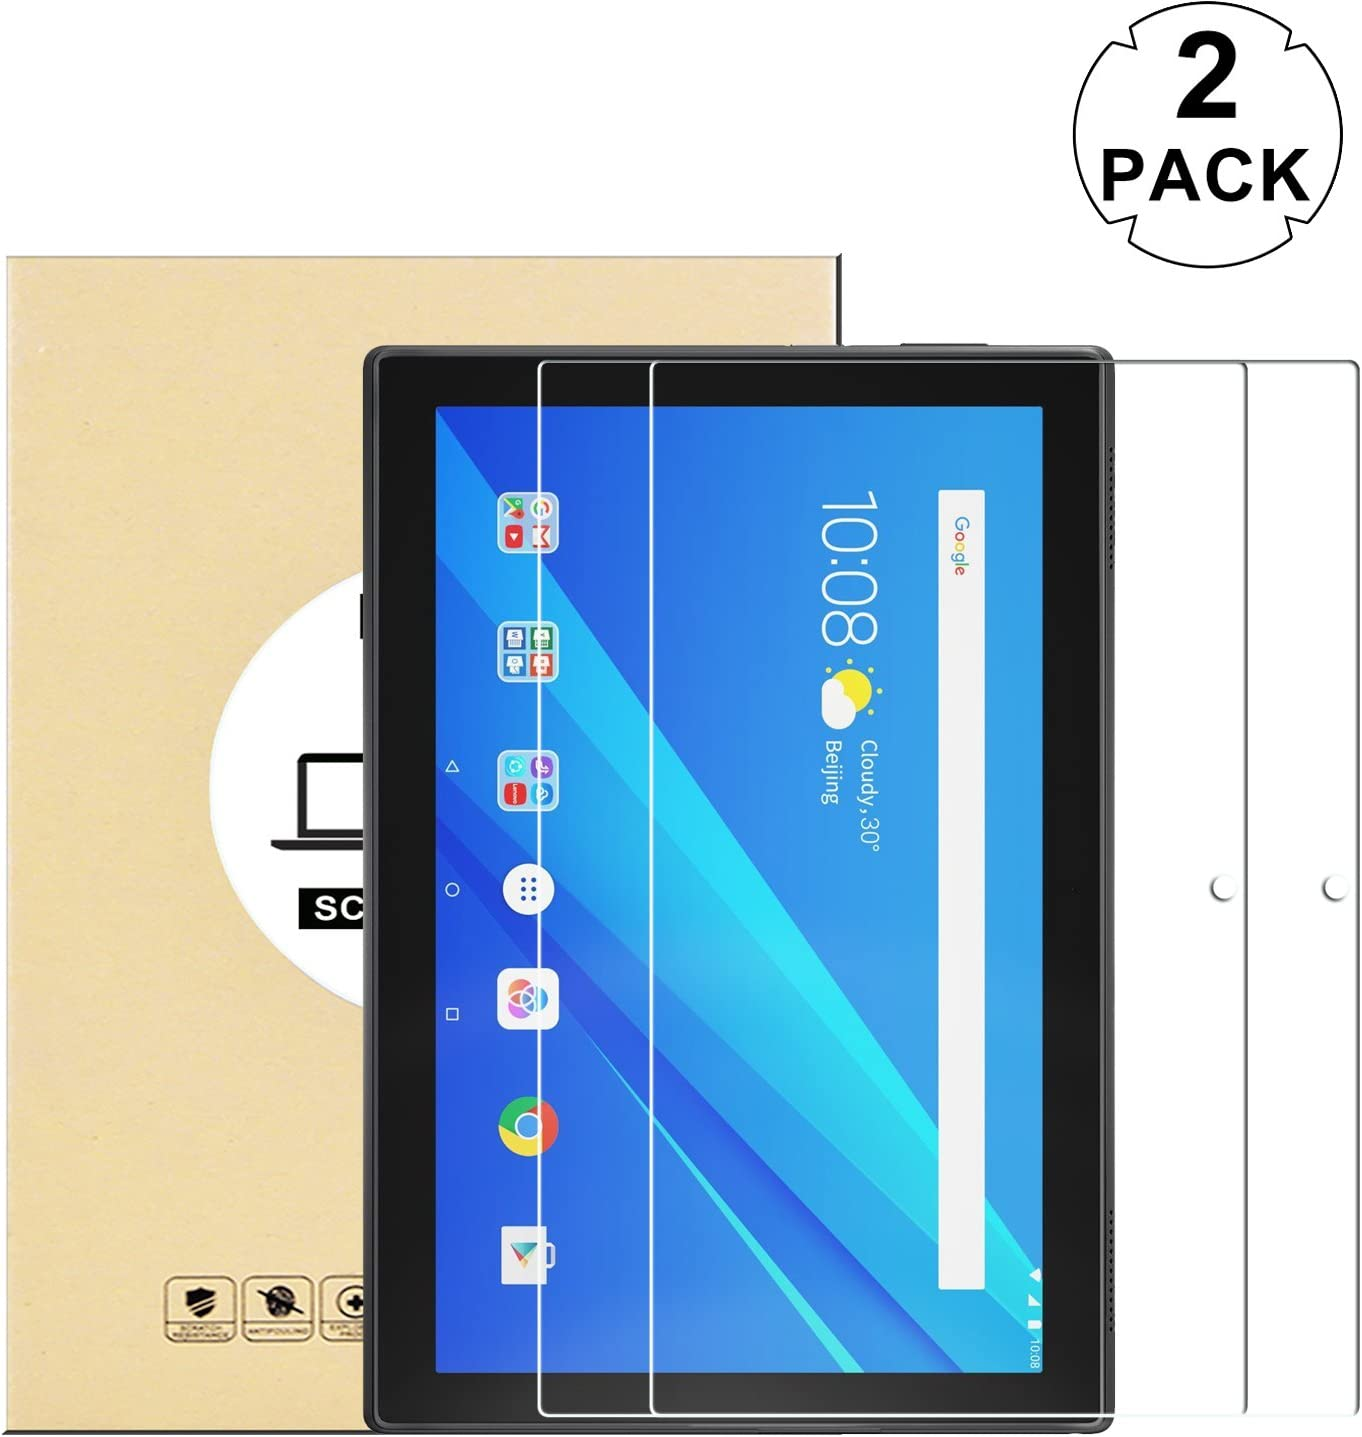 "KTtwo (2 Pack Lenovo Tab 4 10 Screen Protector Glass, 9H Hardness Tempered Glass Anti-Scratch Bubble-Free Screen Protector for Lenovo Tab 4 10 10.1"" Tablet"